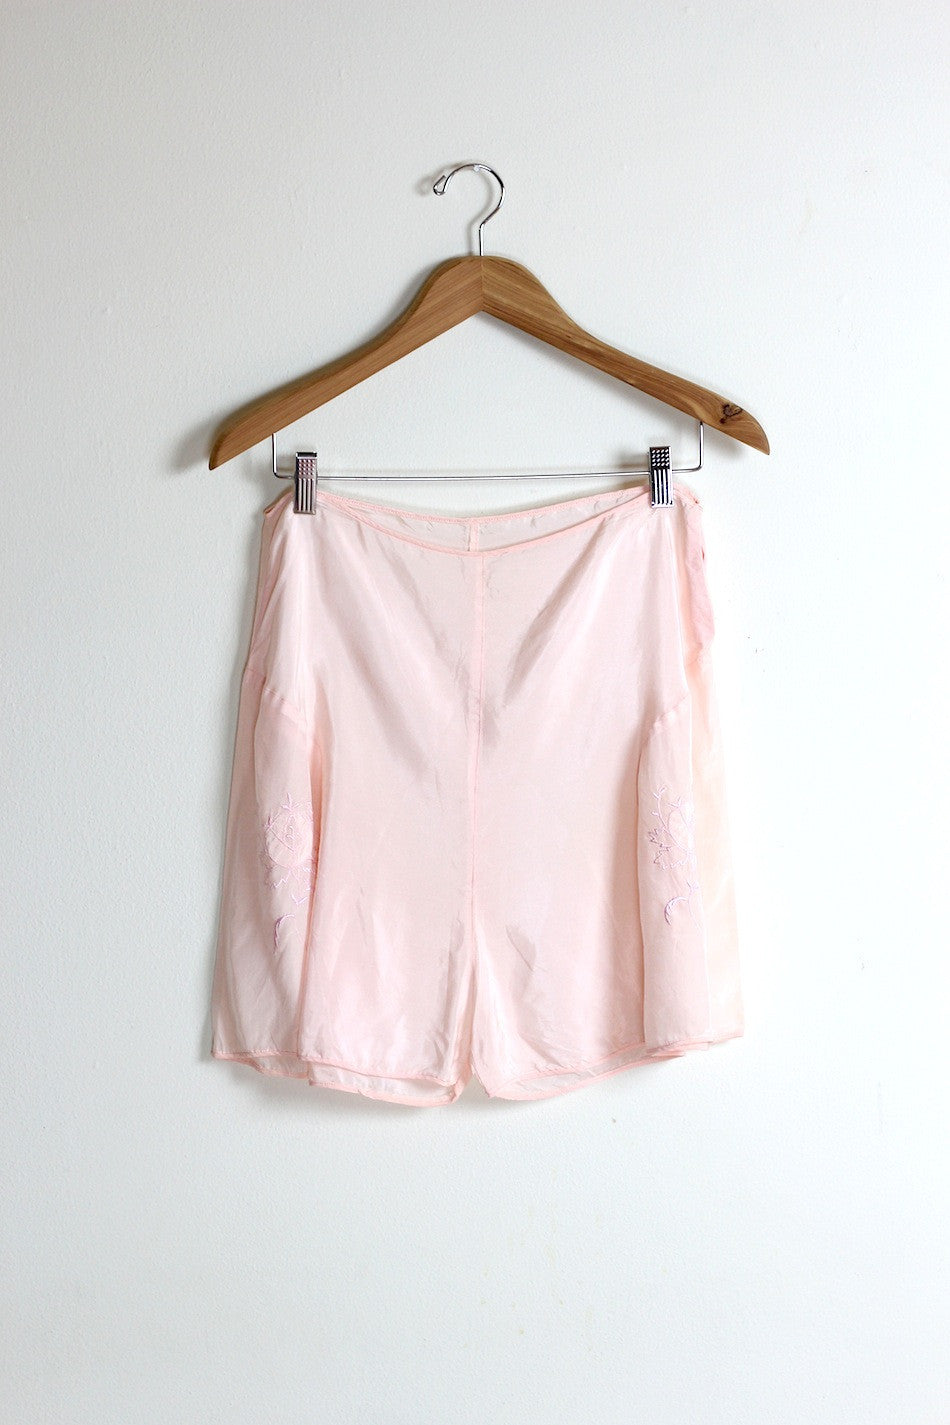 3c58c0ae4693e Pénélope 1920s Silk Tap Shorts – The Vintage Net